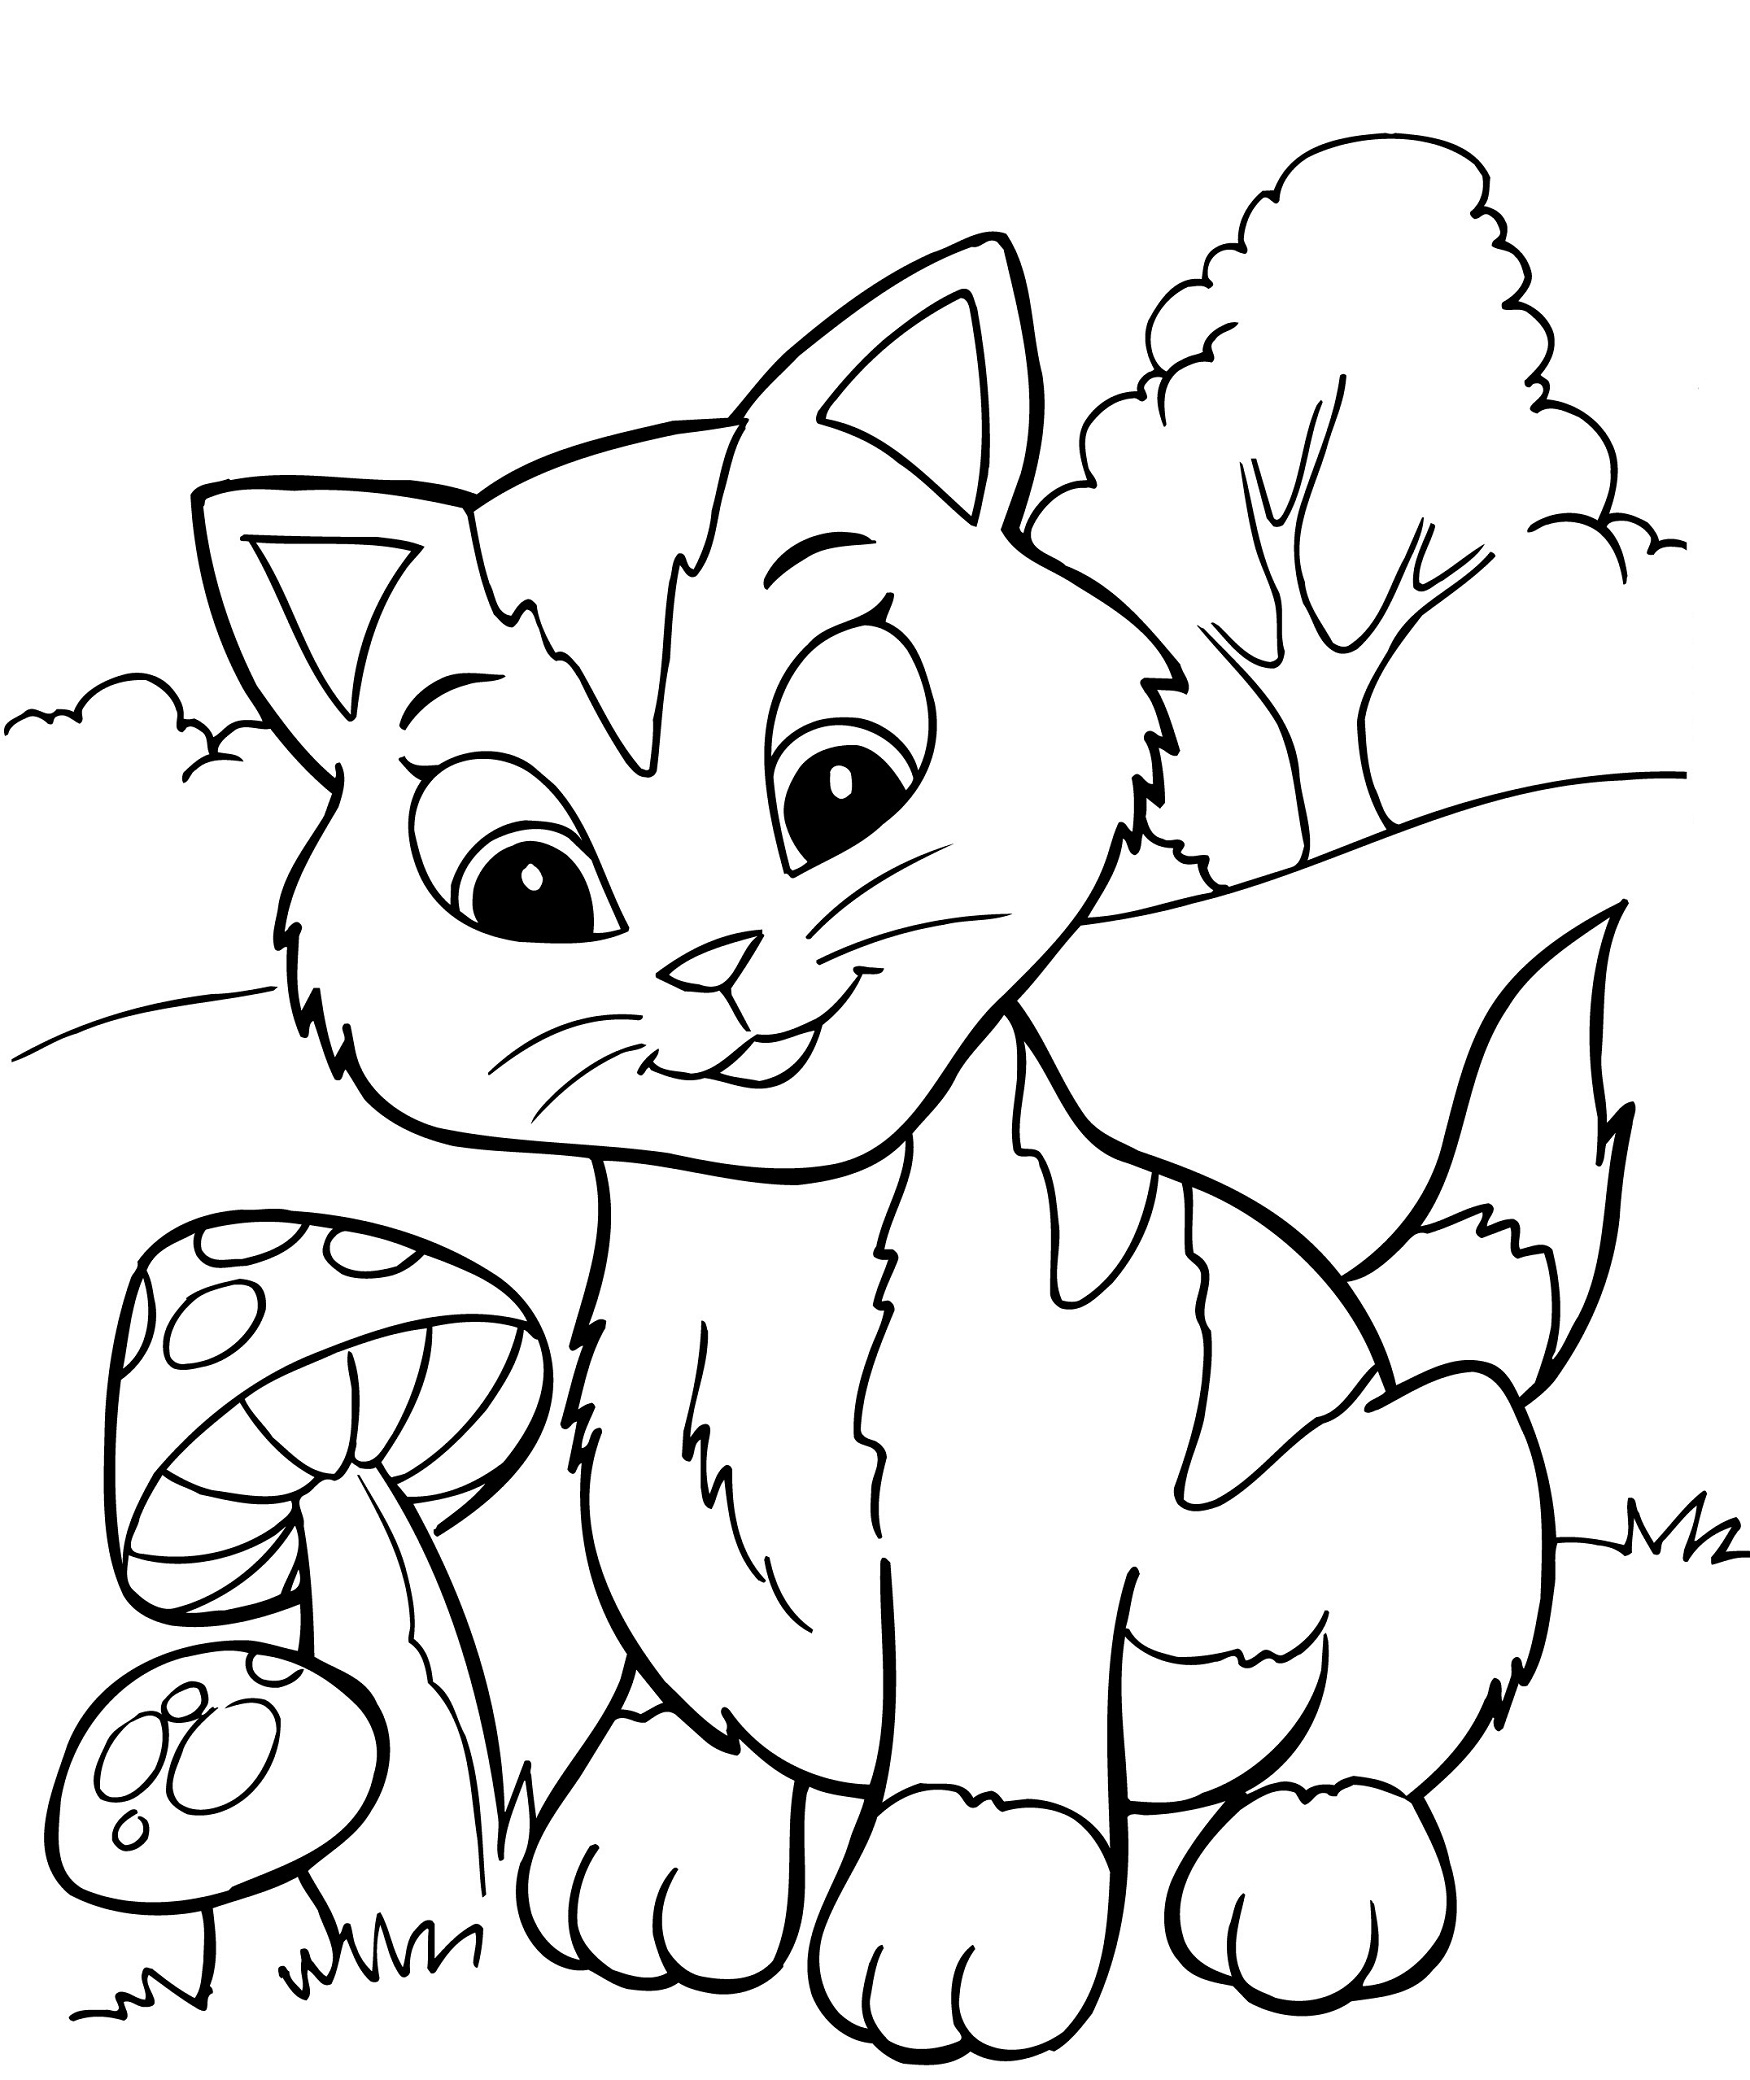 1750x2080 High Tech Cute Kitten Coloring Pages Brilliant With Gallery